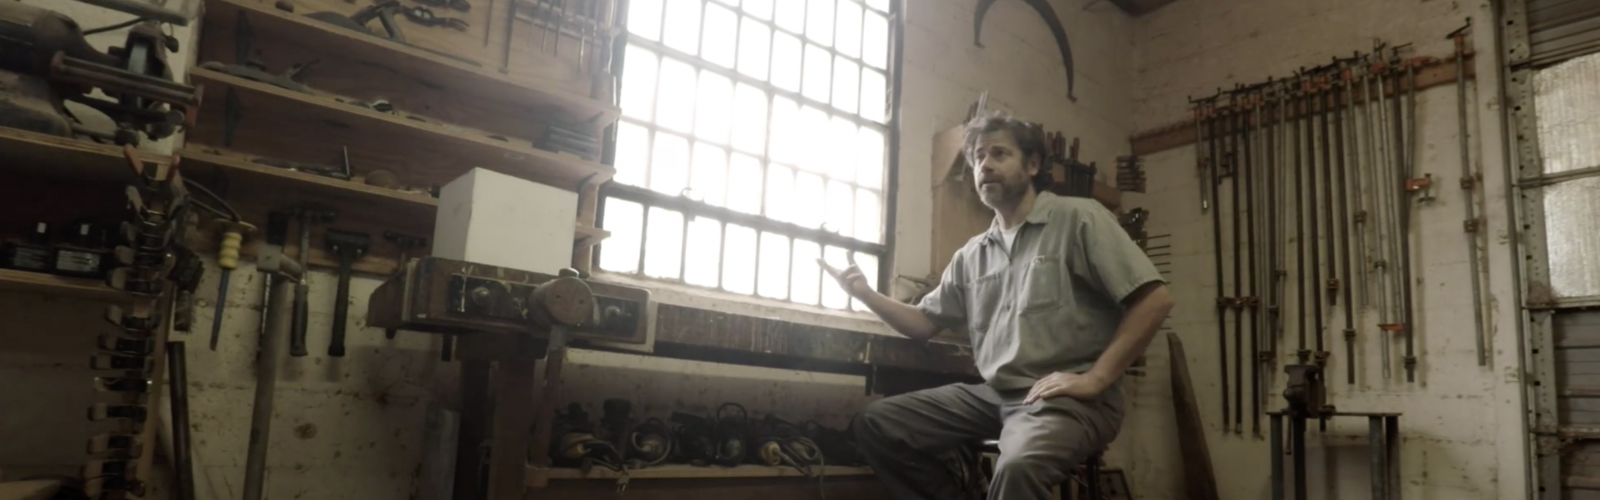 Discover sculptor Joël Urruty's creative process in this short video